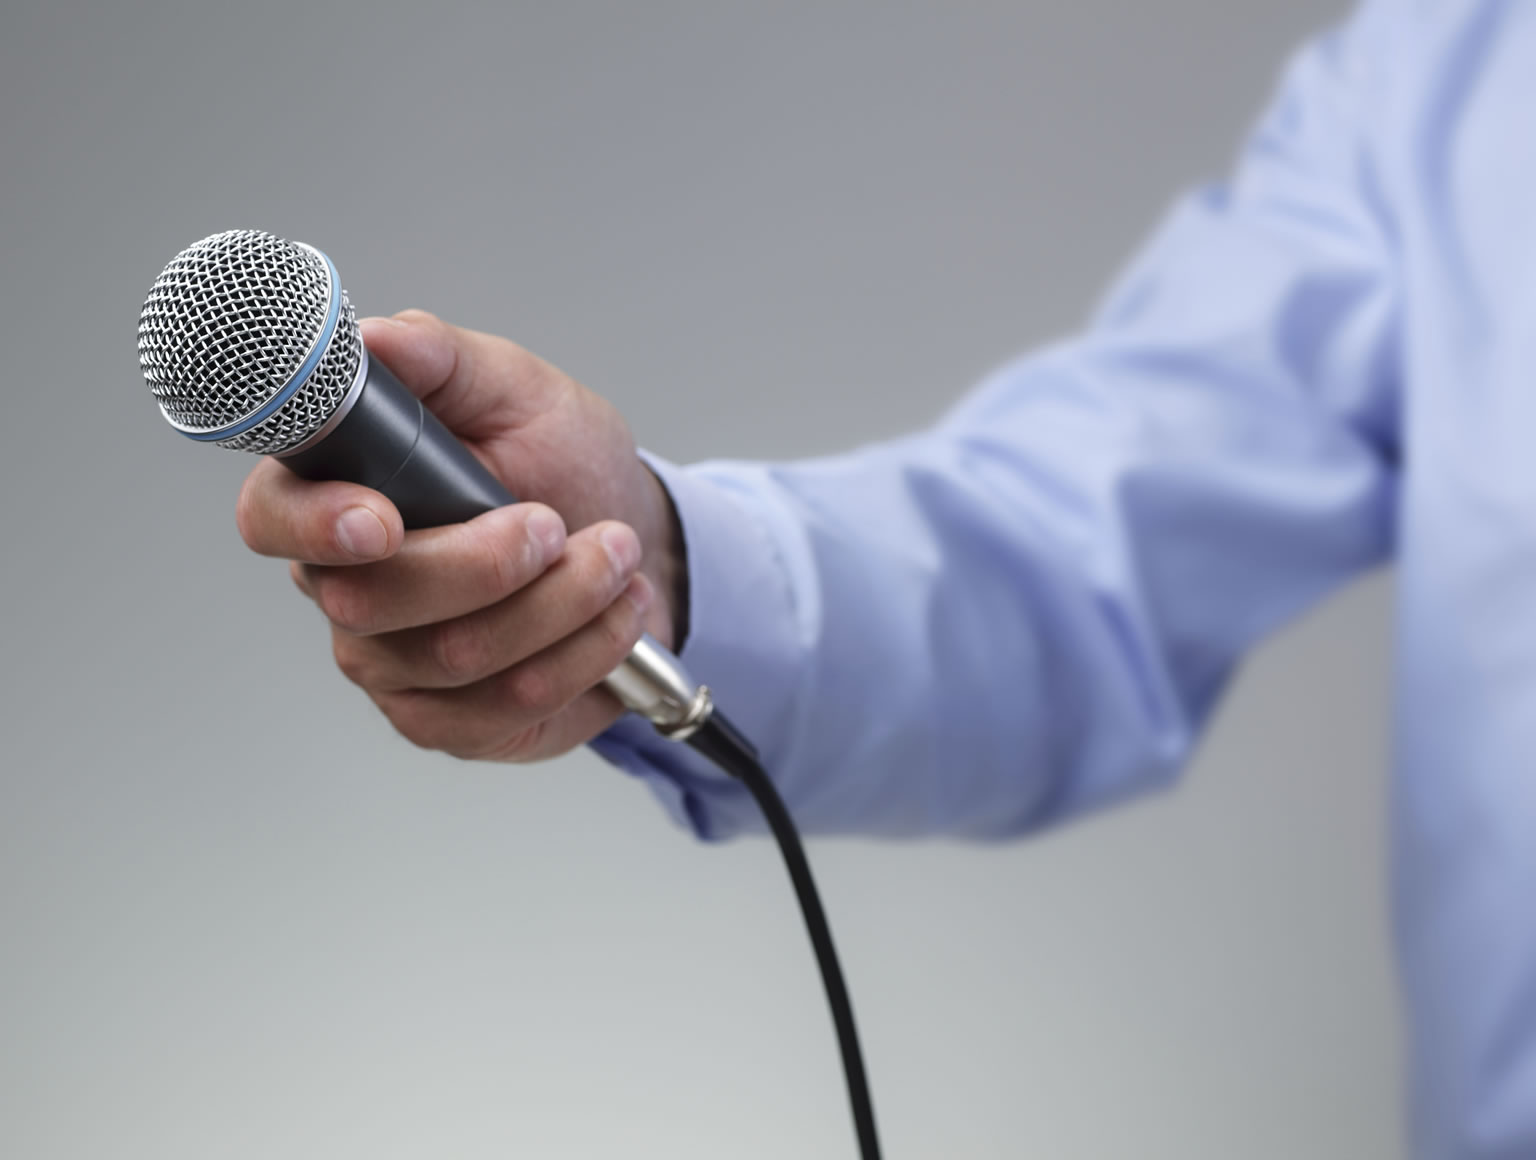 Man in a blue shirt against a plain background holding a microphone out as if awaiting a response